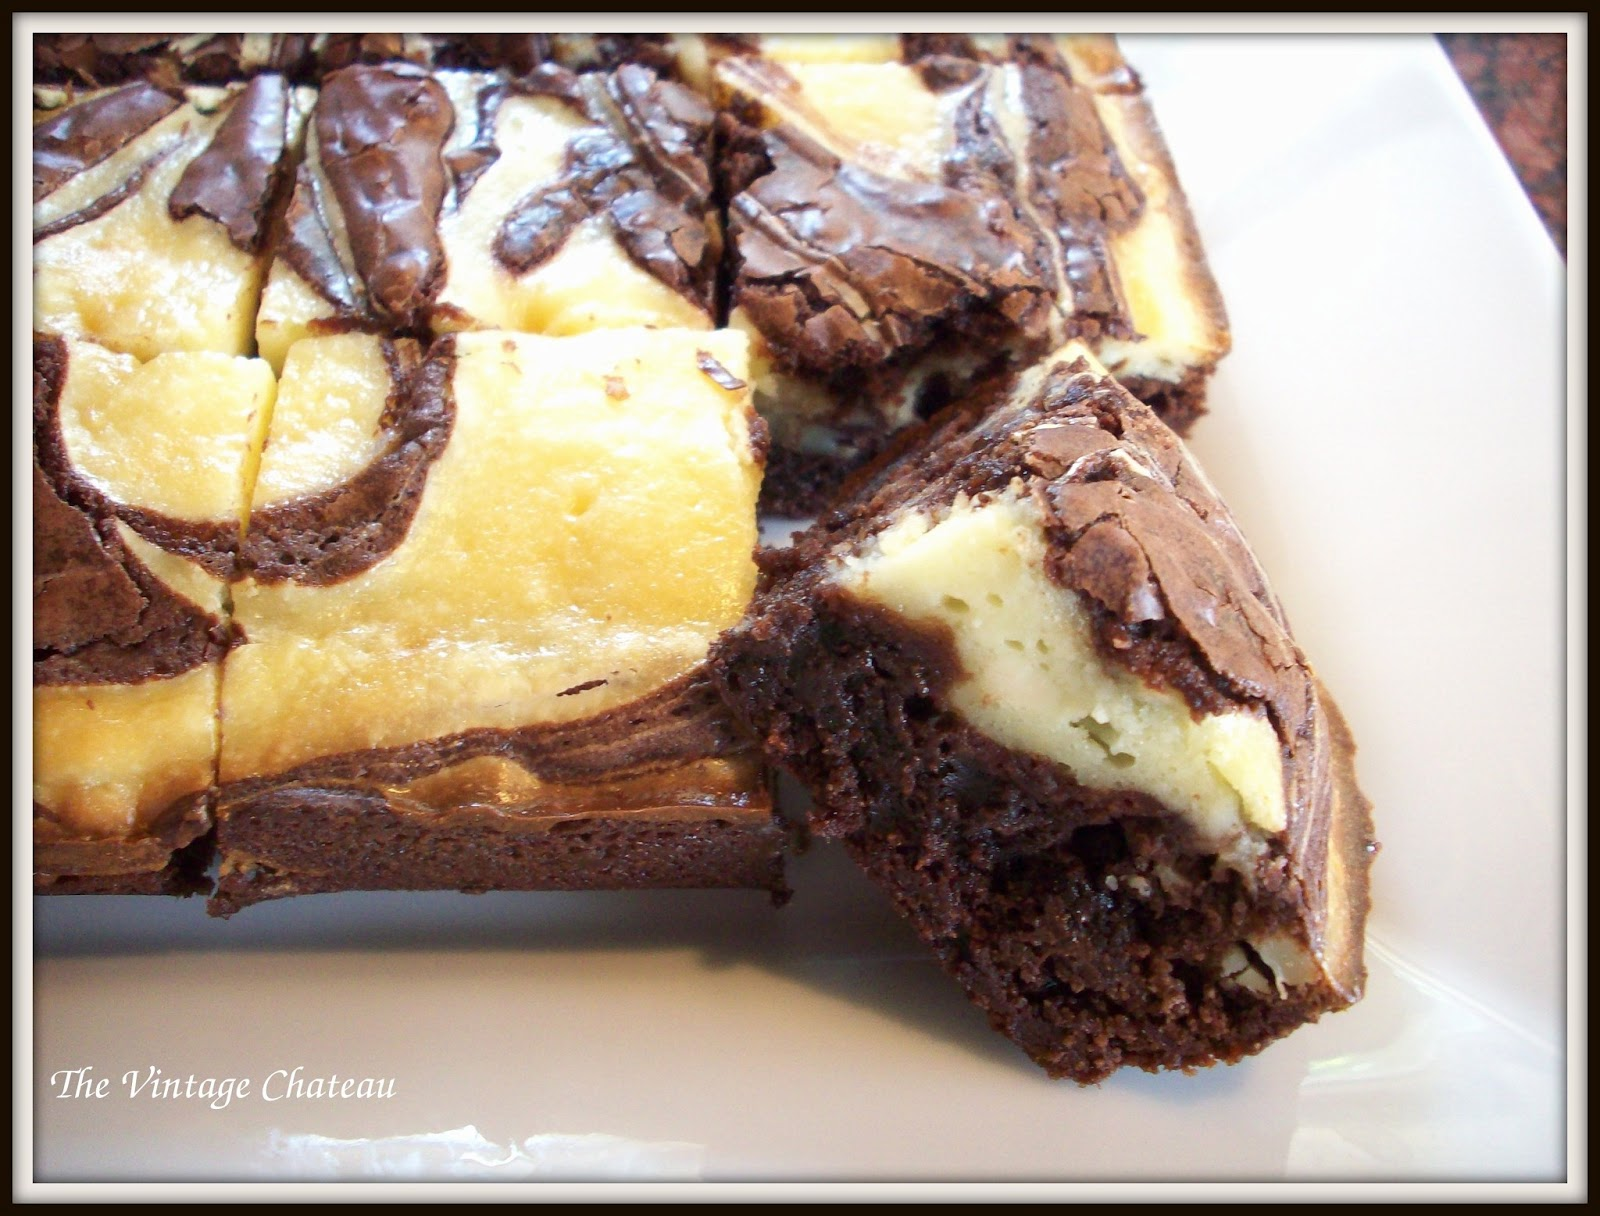 The Vintage Chateau: Cream Cheese Brownies